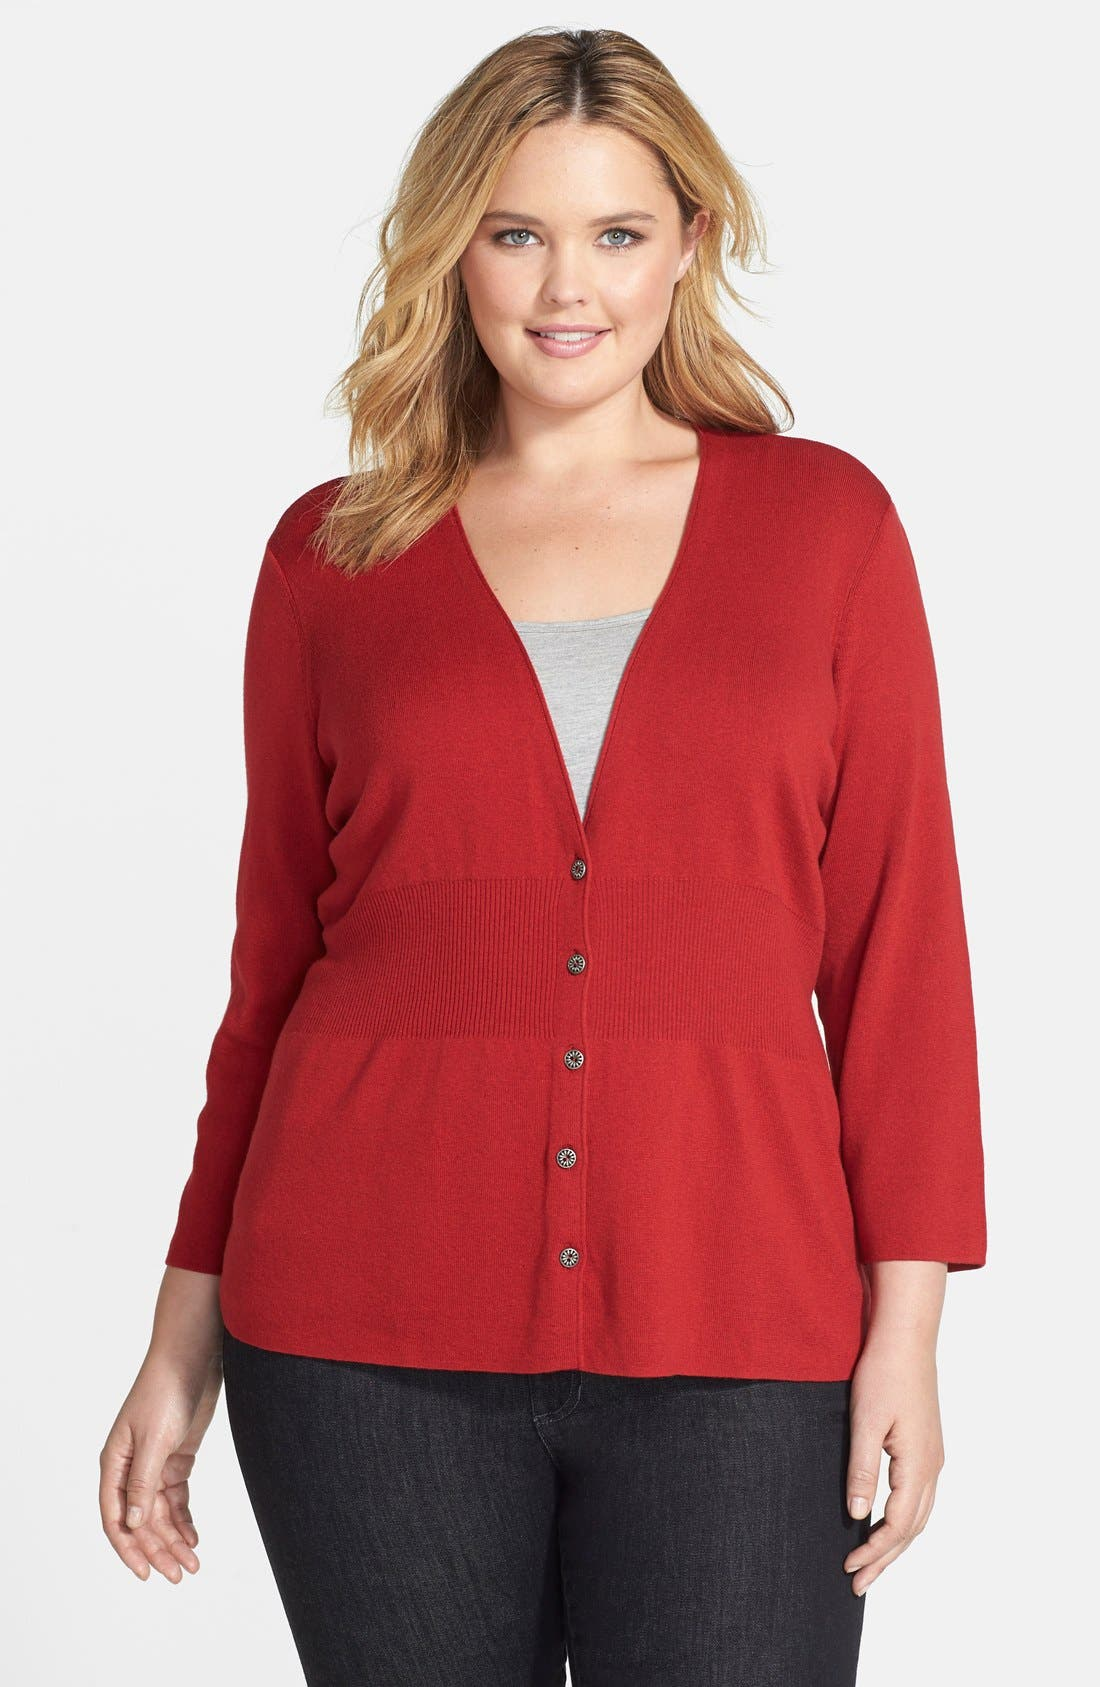 Alternate Image 1 Selected - NIC+ZOE 'Back of the Chair' Cardigan (Plus Size)